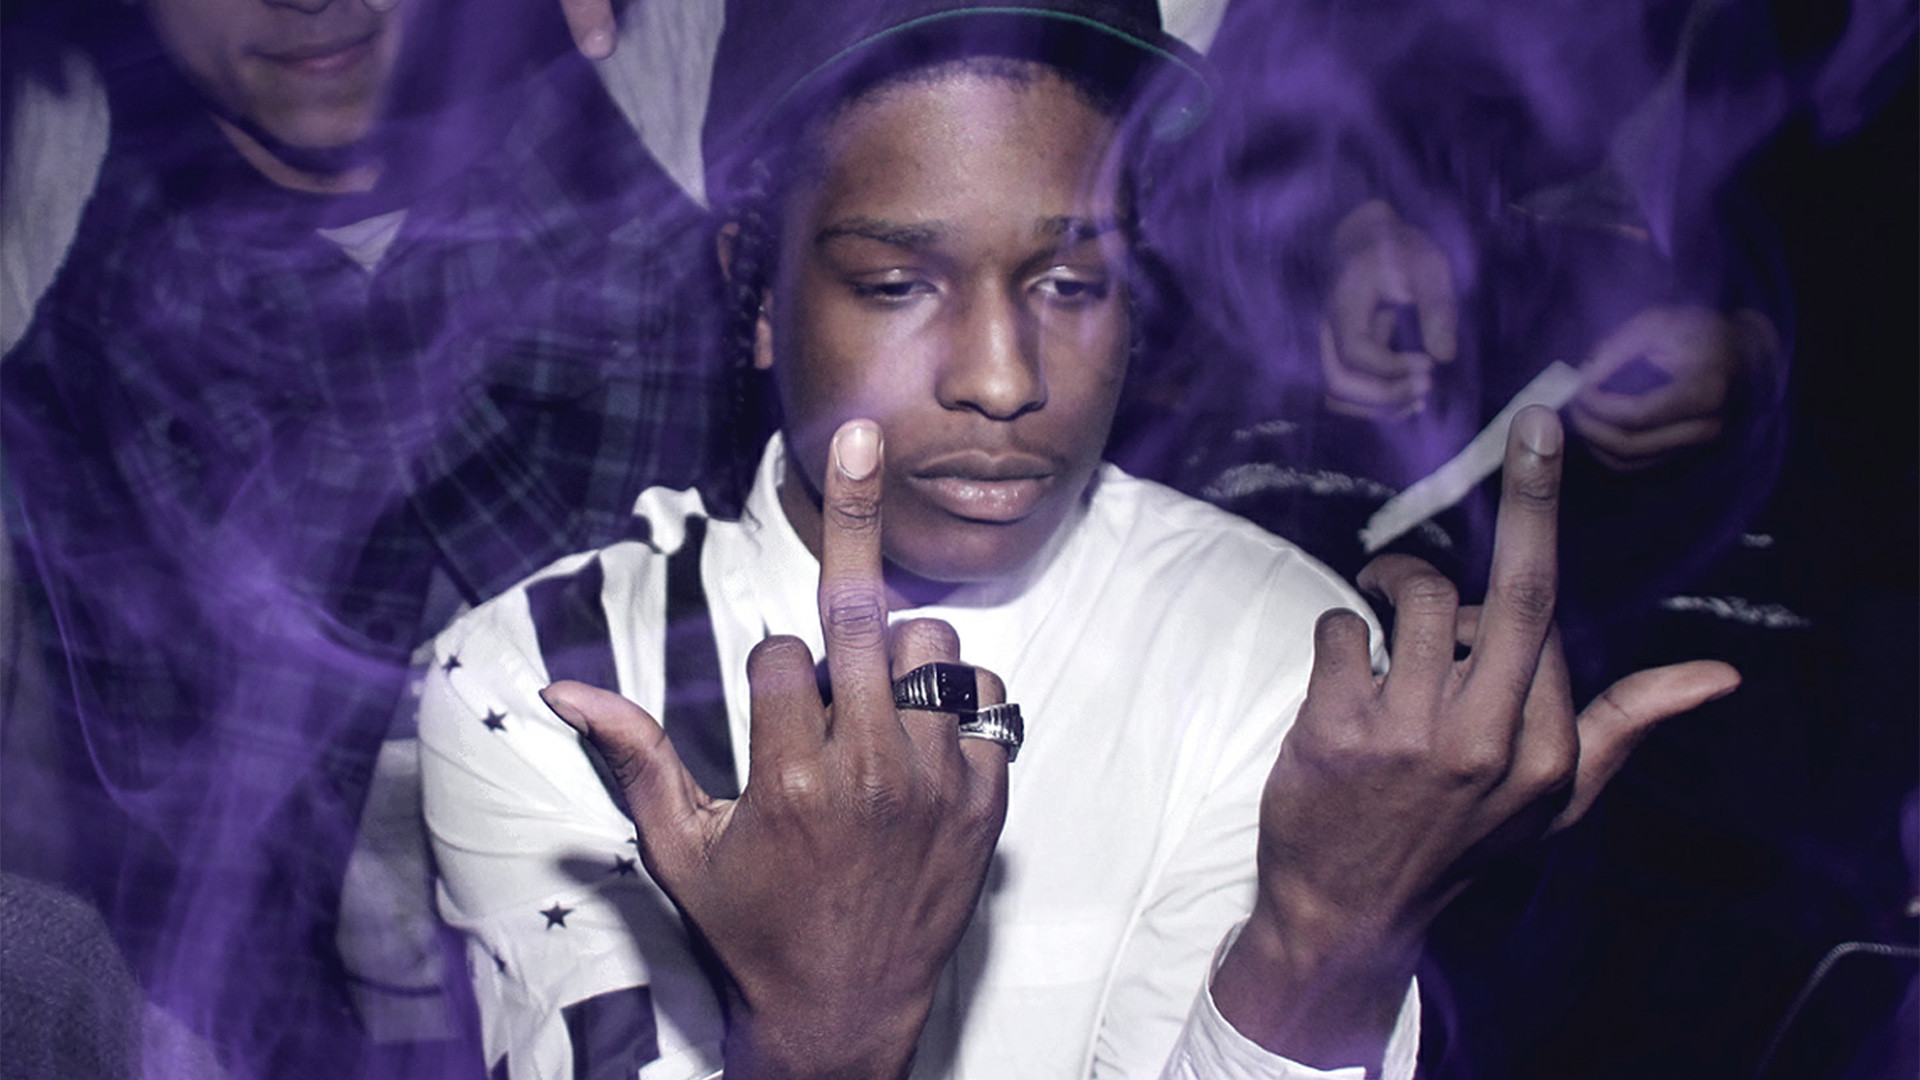 ASAP Rocky comments briefly on his red carpet confrontation at the MTV  VMAs. Last week, some footage surfaced of ASAP Rocky getting up in the  grill of a …